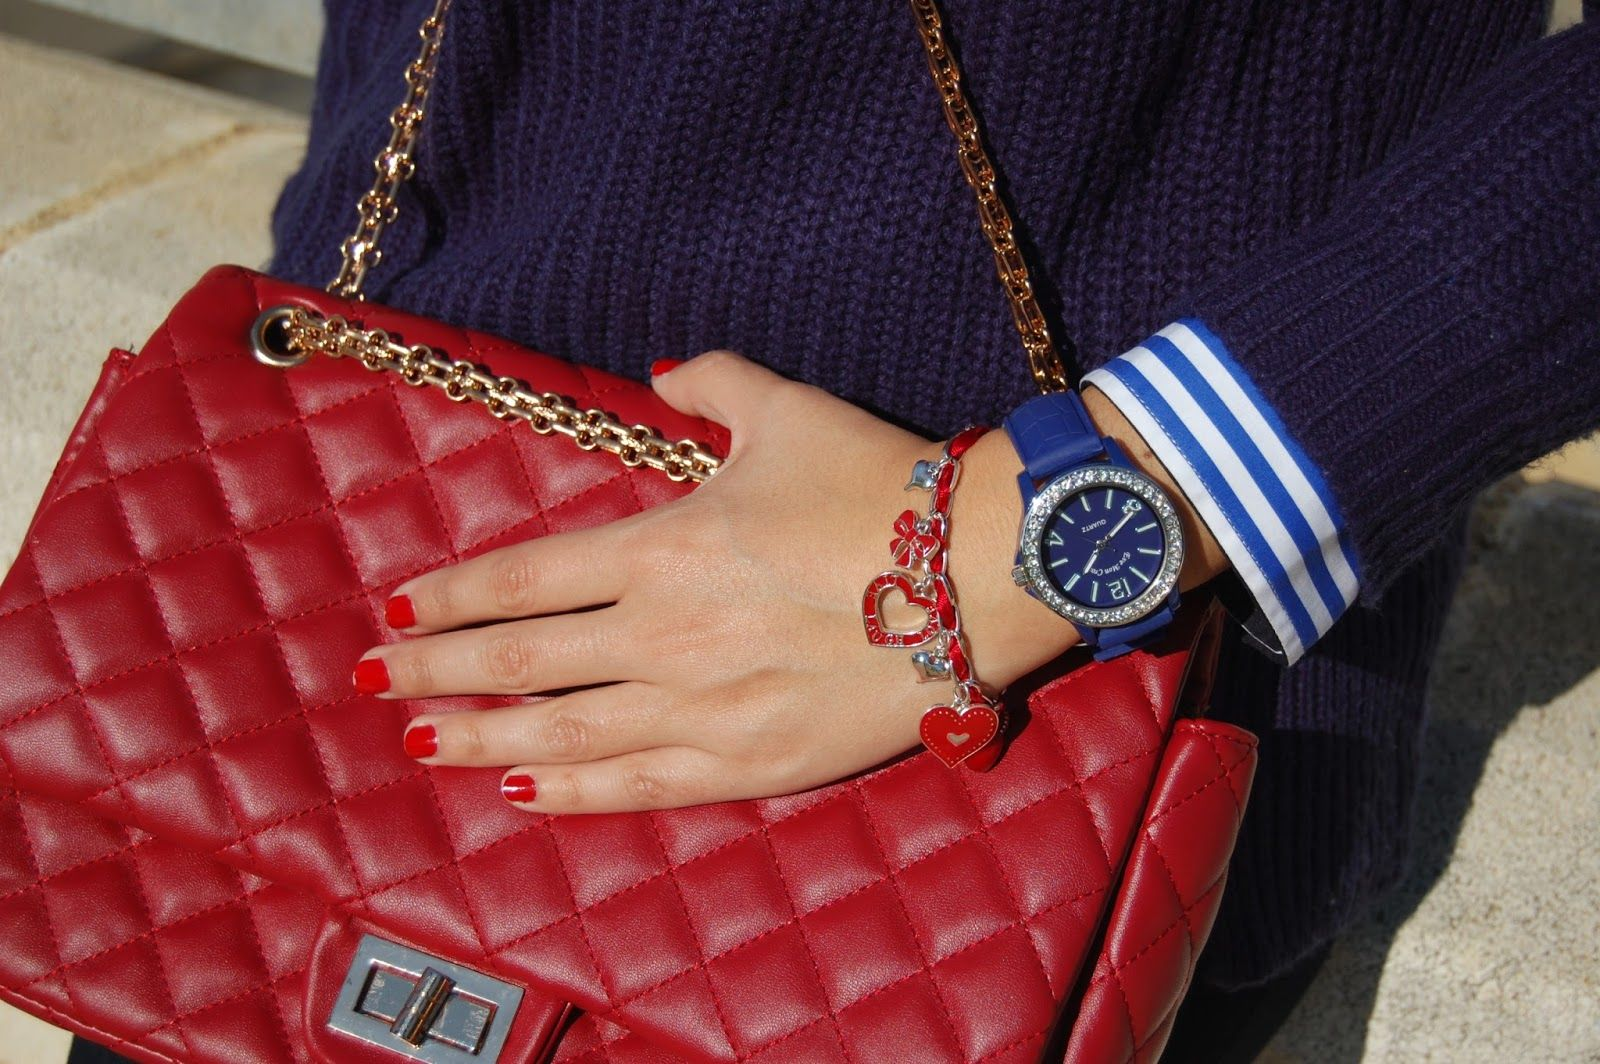 http://unachicasual.blogspot.com.es/2014/12/the-color-blue.html  bolso, bag, rojo, red, gold, dorado, oro, watch, reloj, azul, blue, pulsera, corazón, rojo, bracelet, red, heart